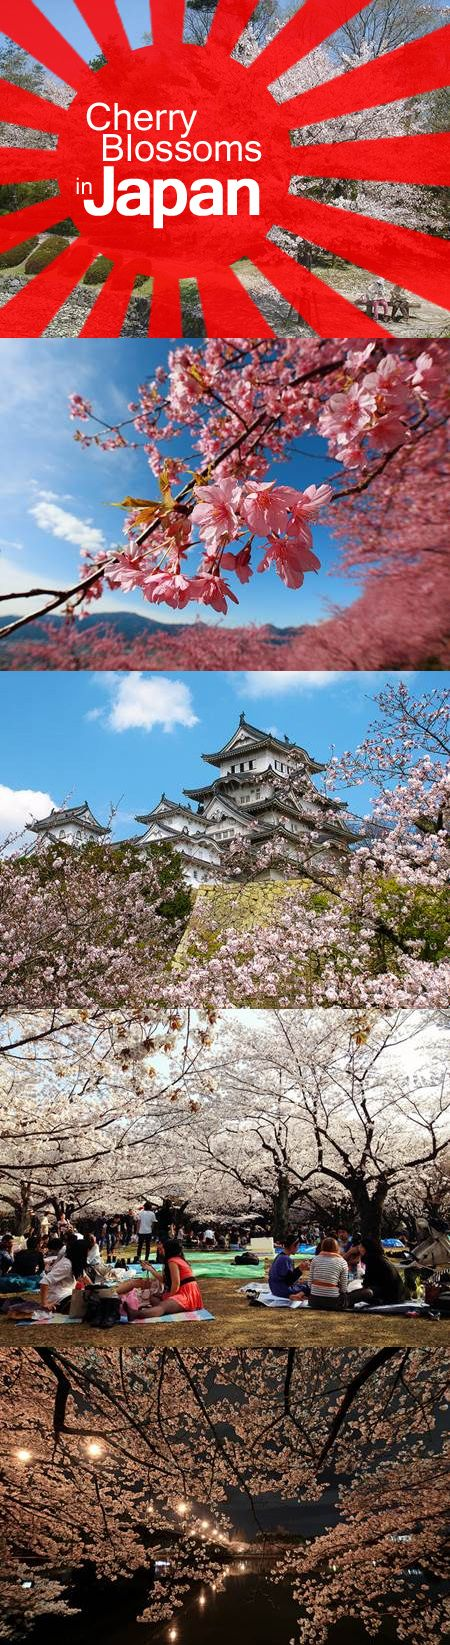 Tips on when and where to see cherry blossoms (called sakura in Japanese) during their peak season.